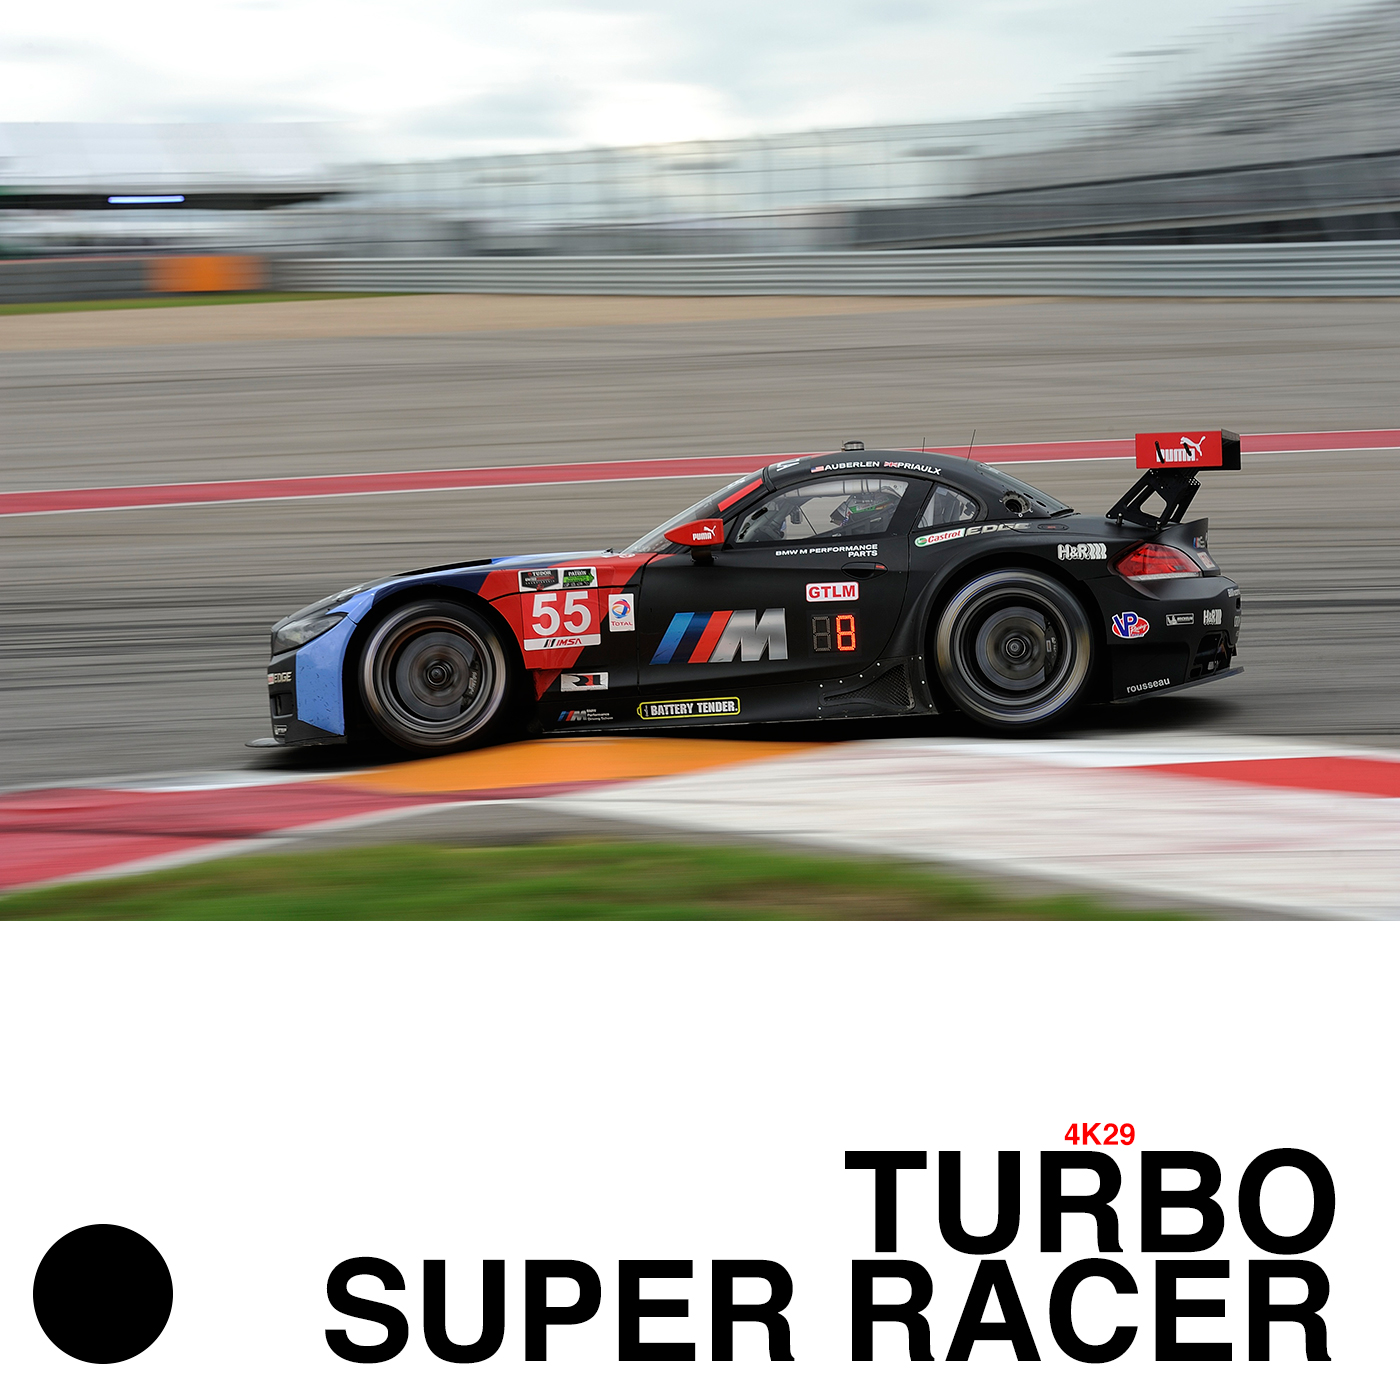 TURBO SUPER RACER 4K29 MOBILE640